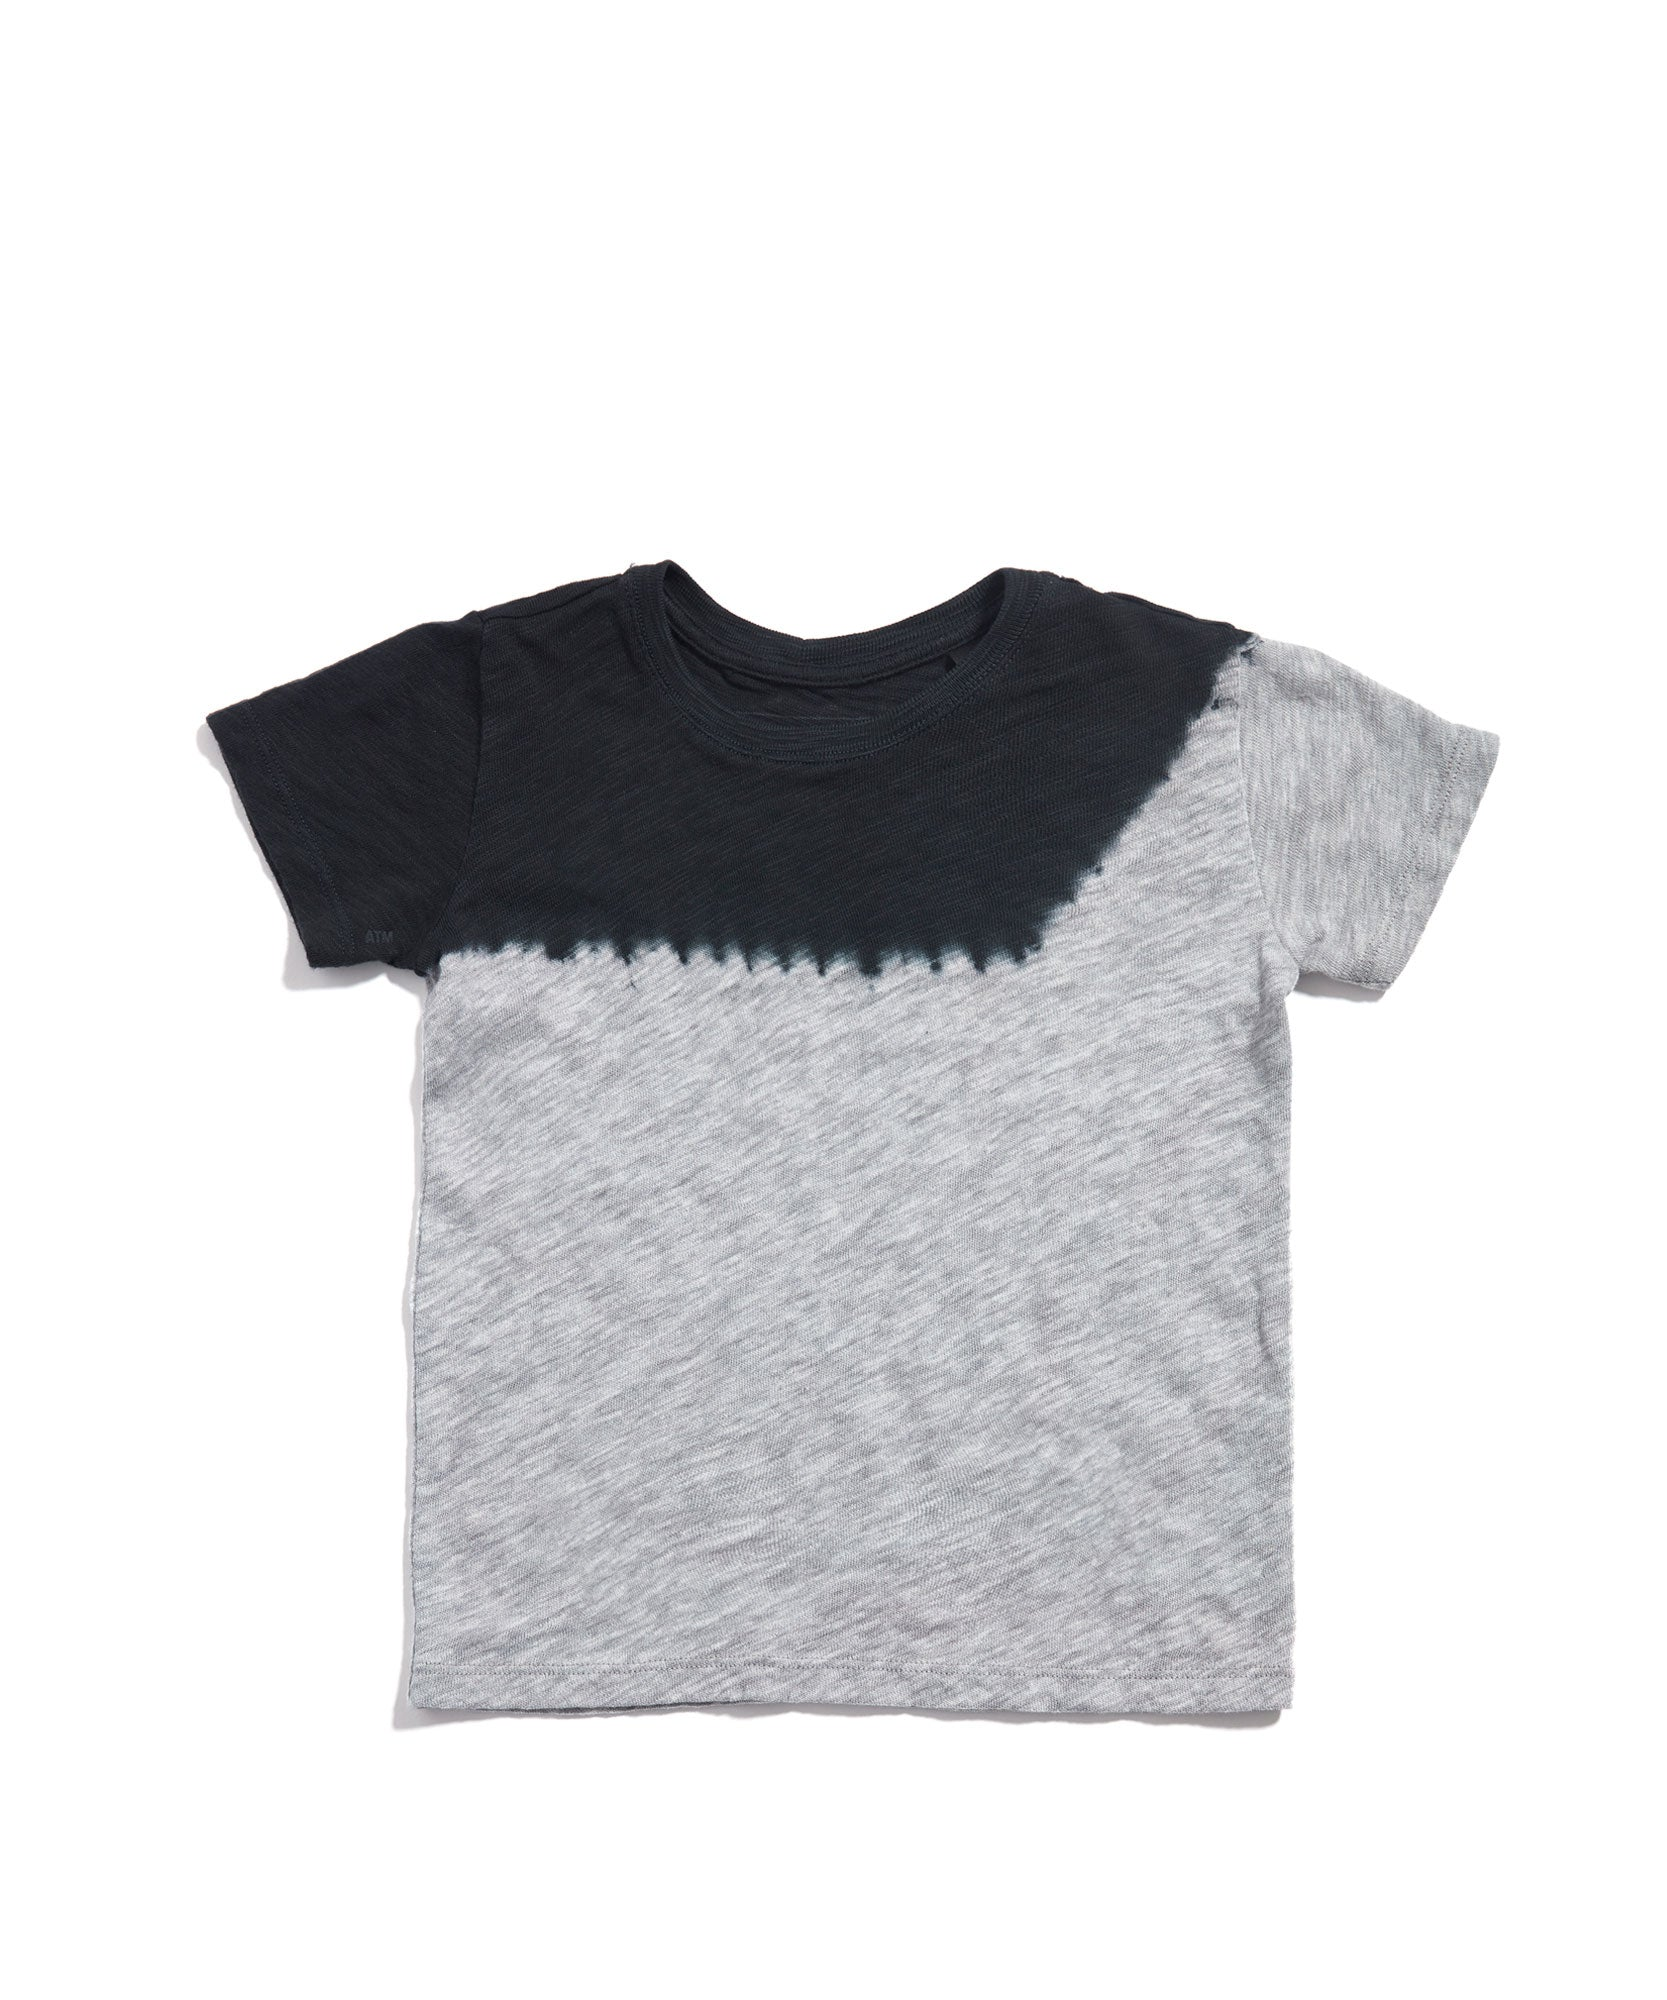 Heather Grey/ Black Dip Dye Kids Slub Jersey Short Sleeve Tee - Kid's Cotton Short Sleeve Tee by ATM Anthony Thomas Melillo